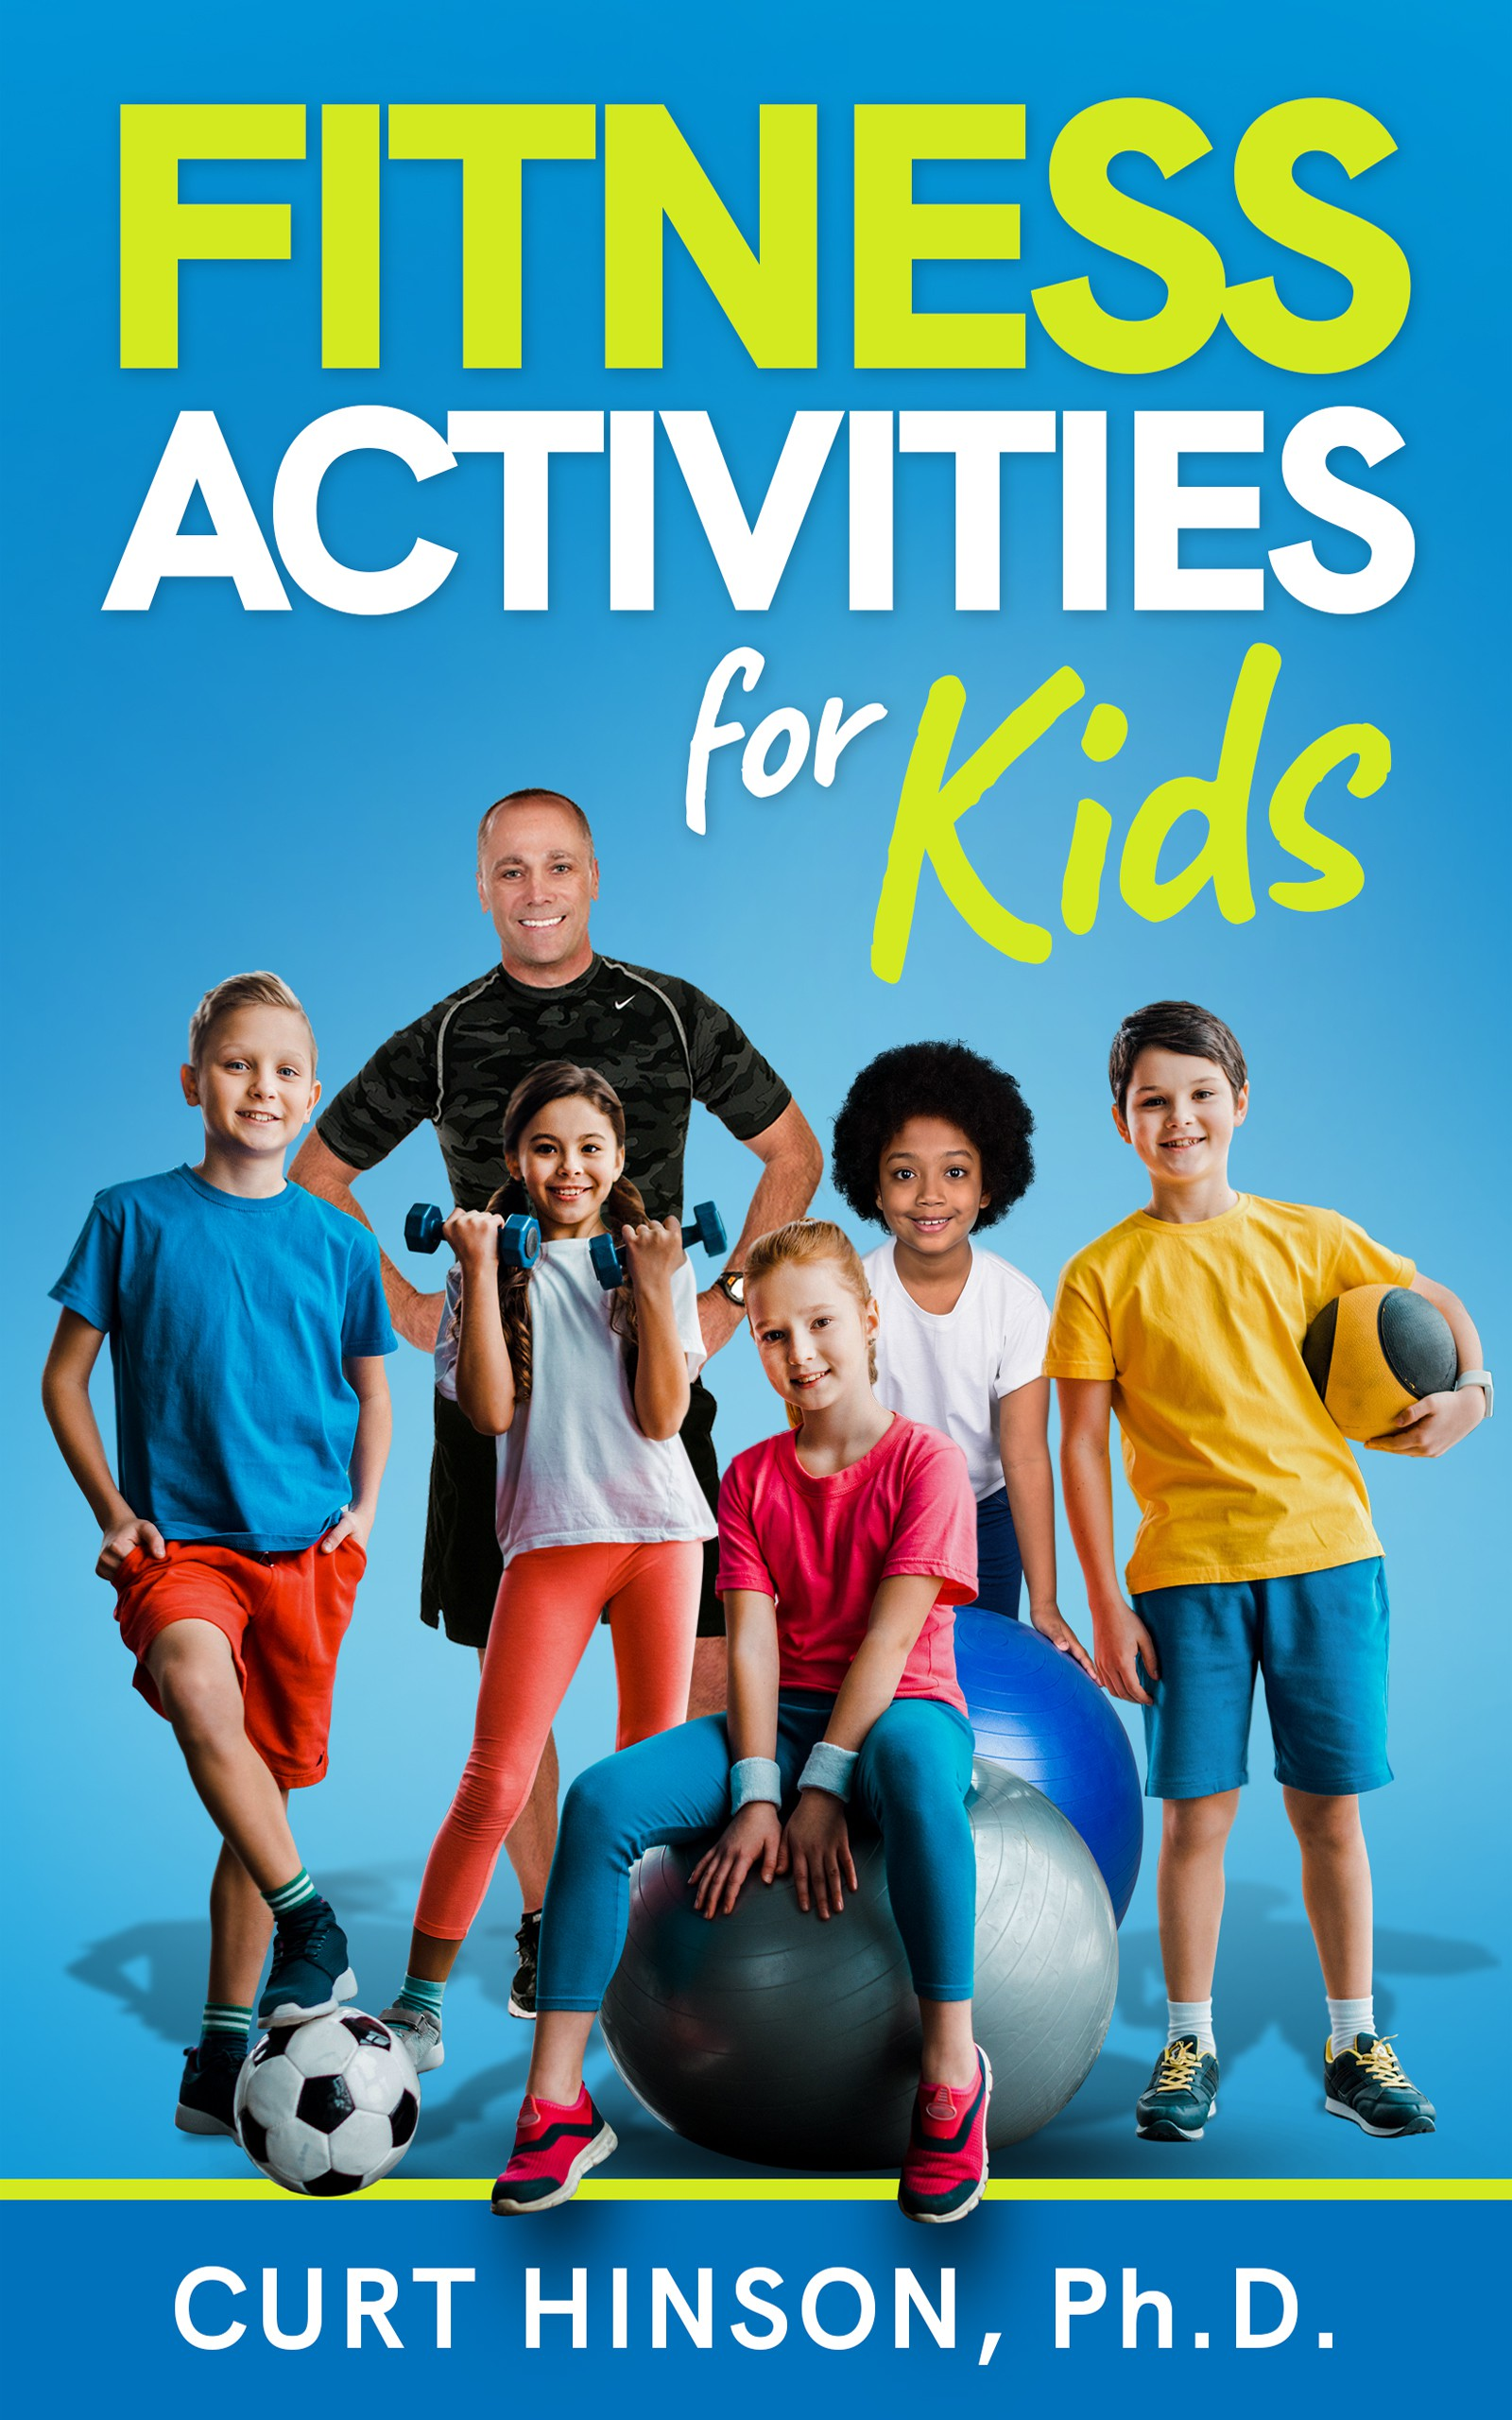 We need a fun and colorful book cover for a fitness activity book geared to school teachers.